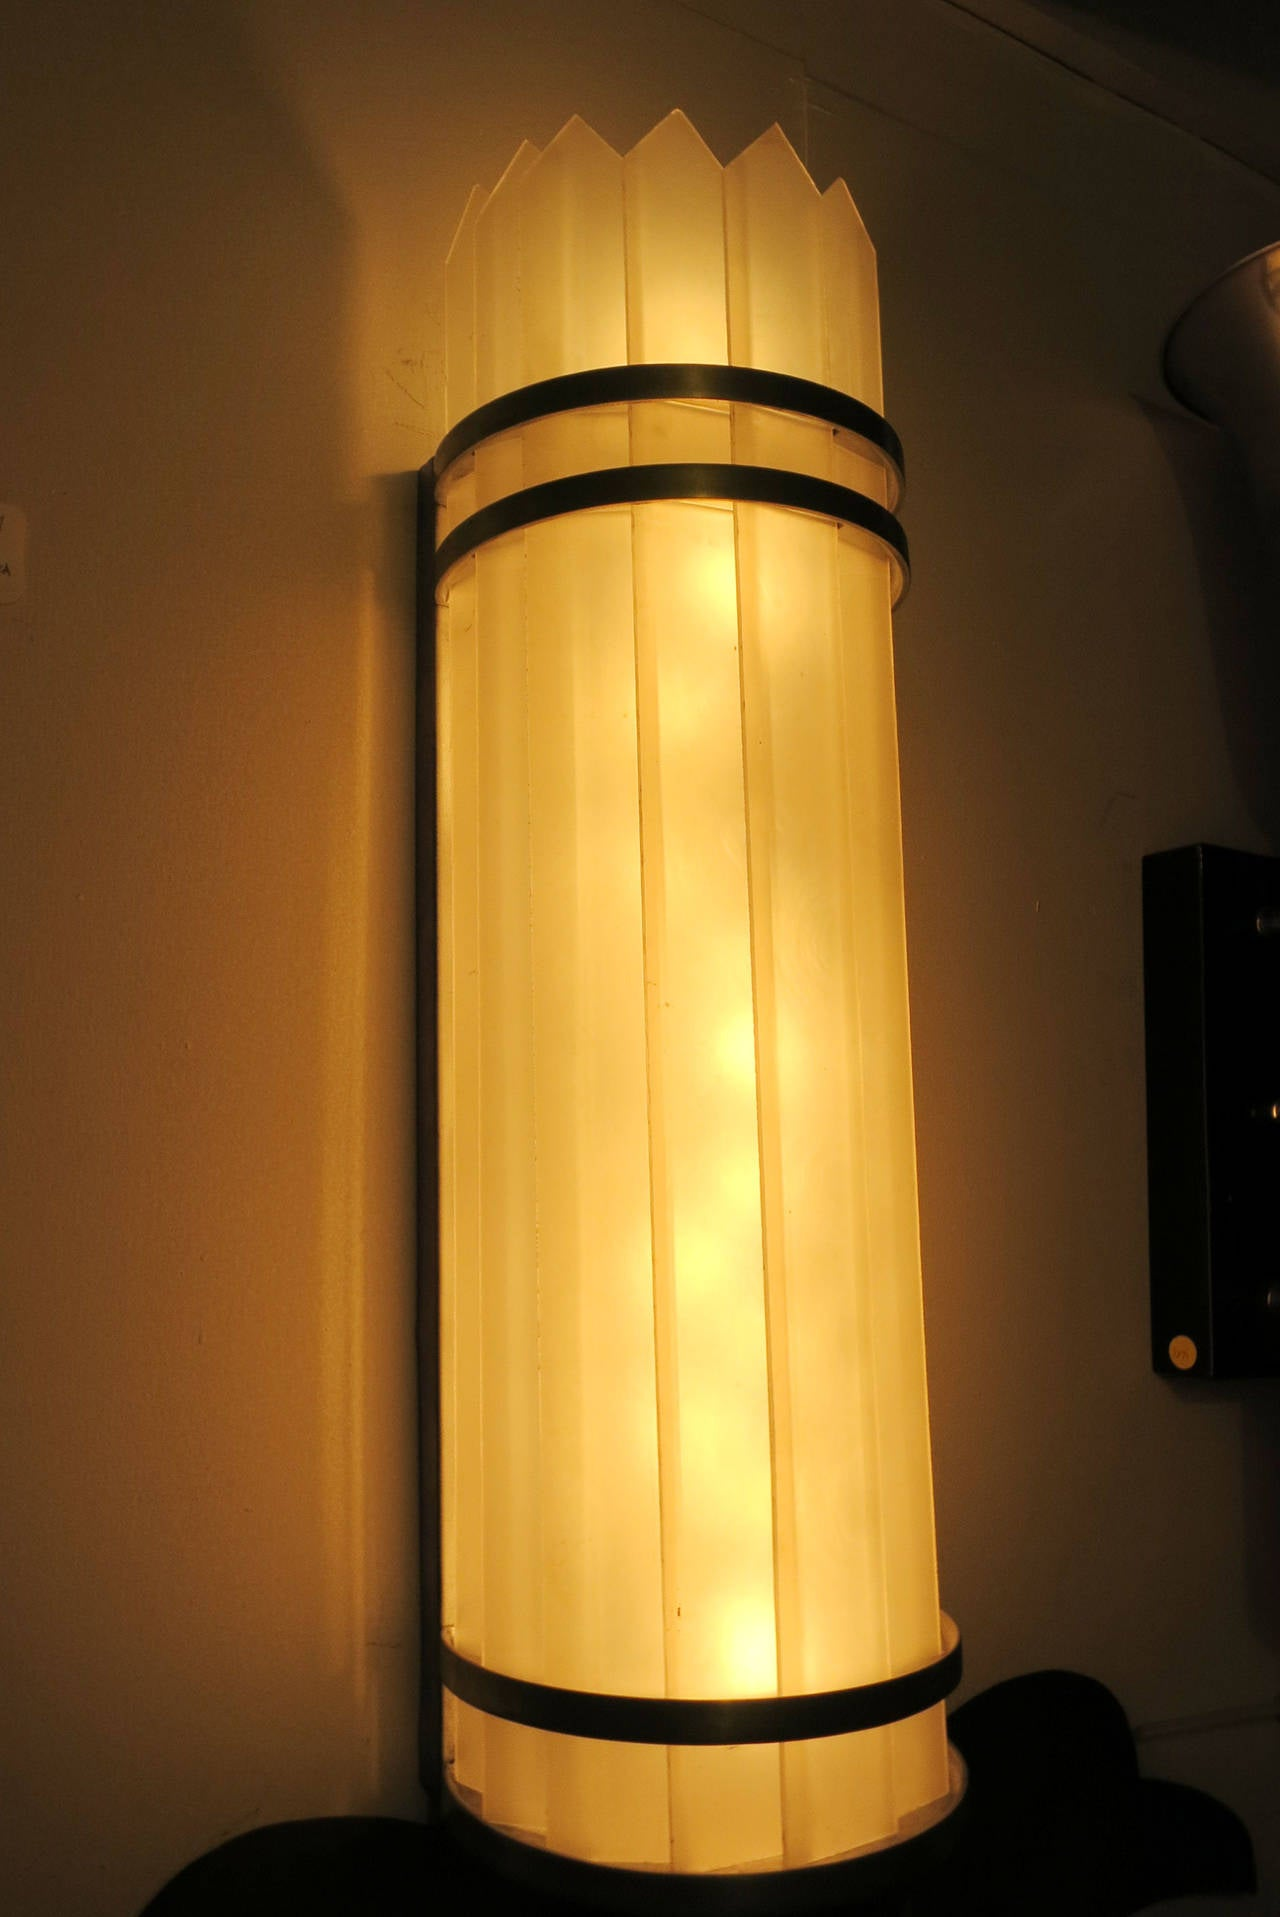 Milk Glass Wall Lamps : Massive Art Deco Polished Aluminum with Slatted Milk Glass Wall Lamp Sonce, Pair at 1stdibs